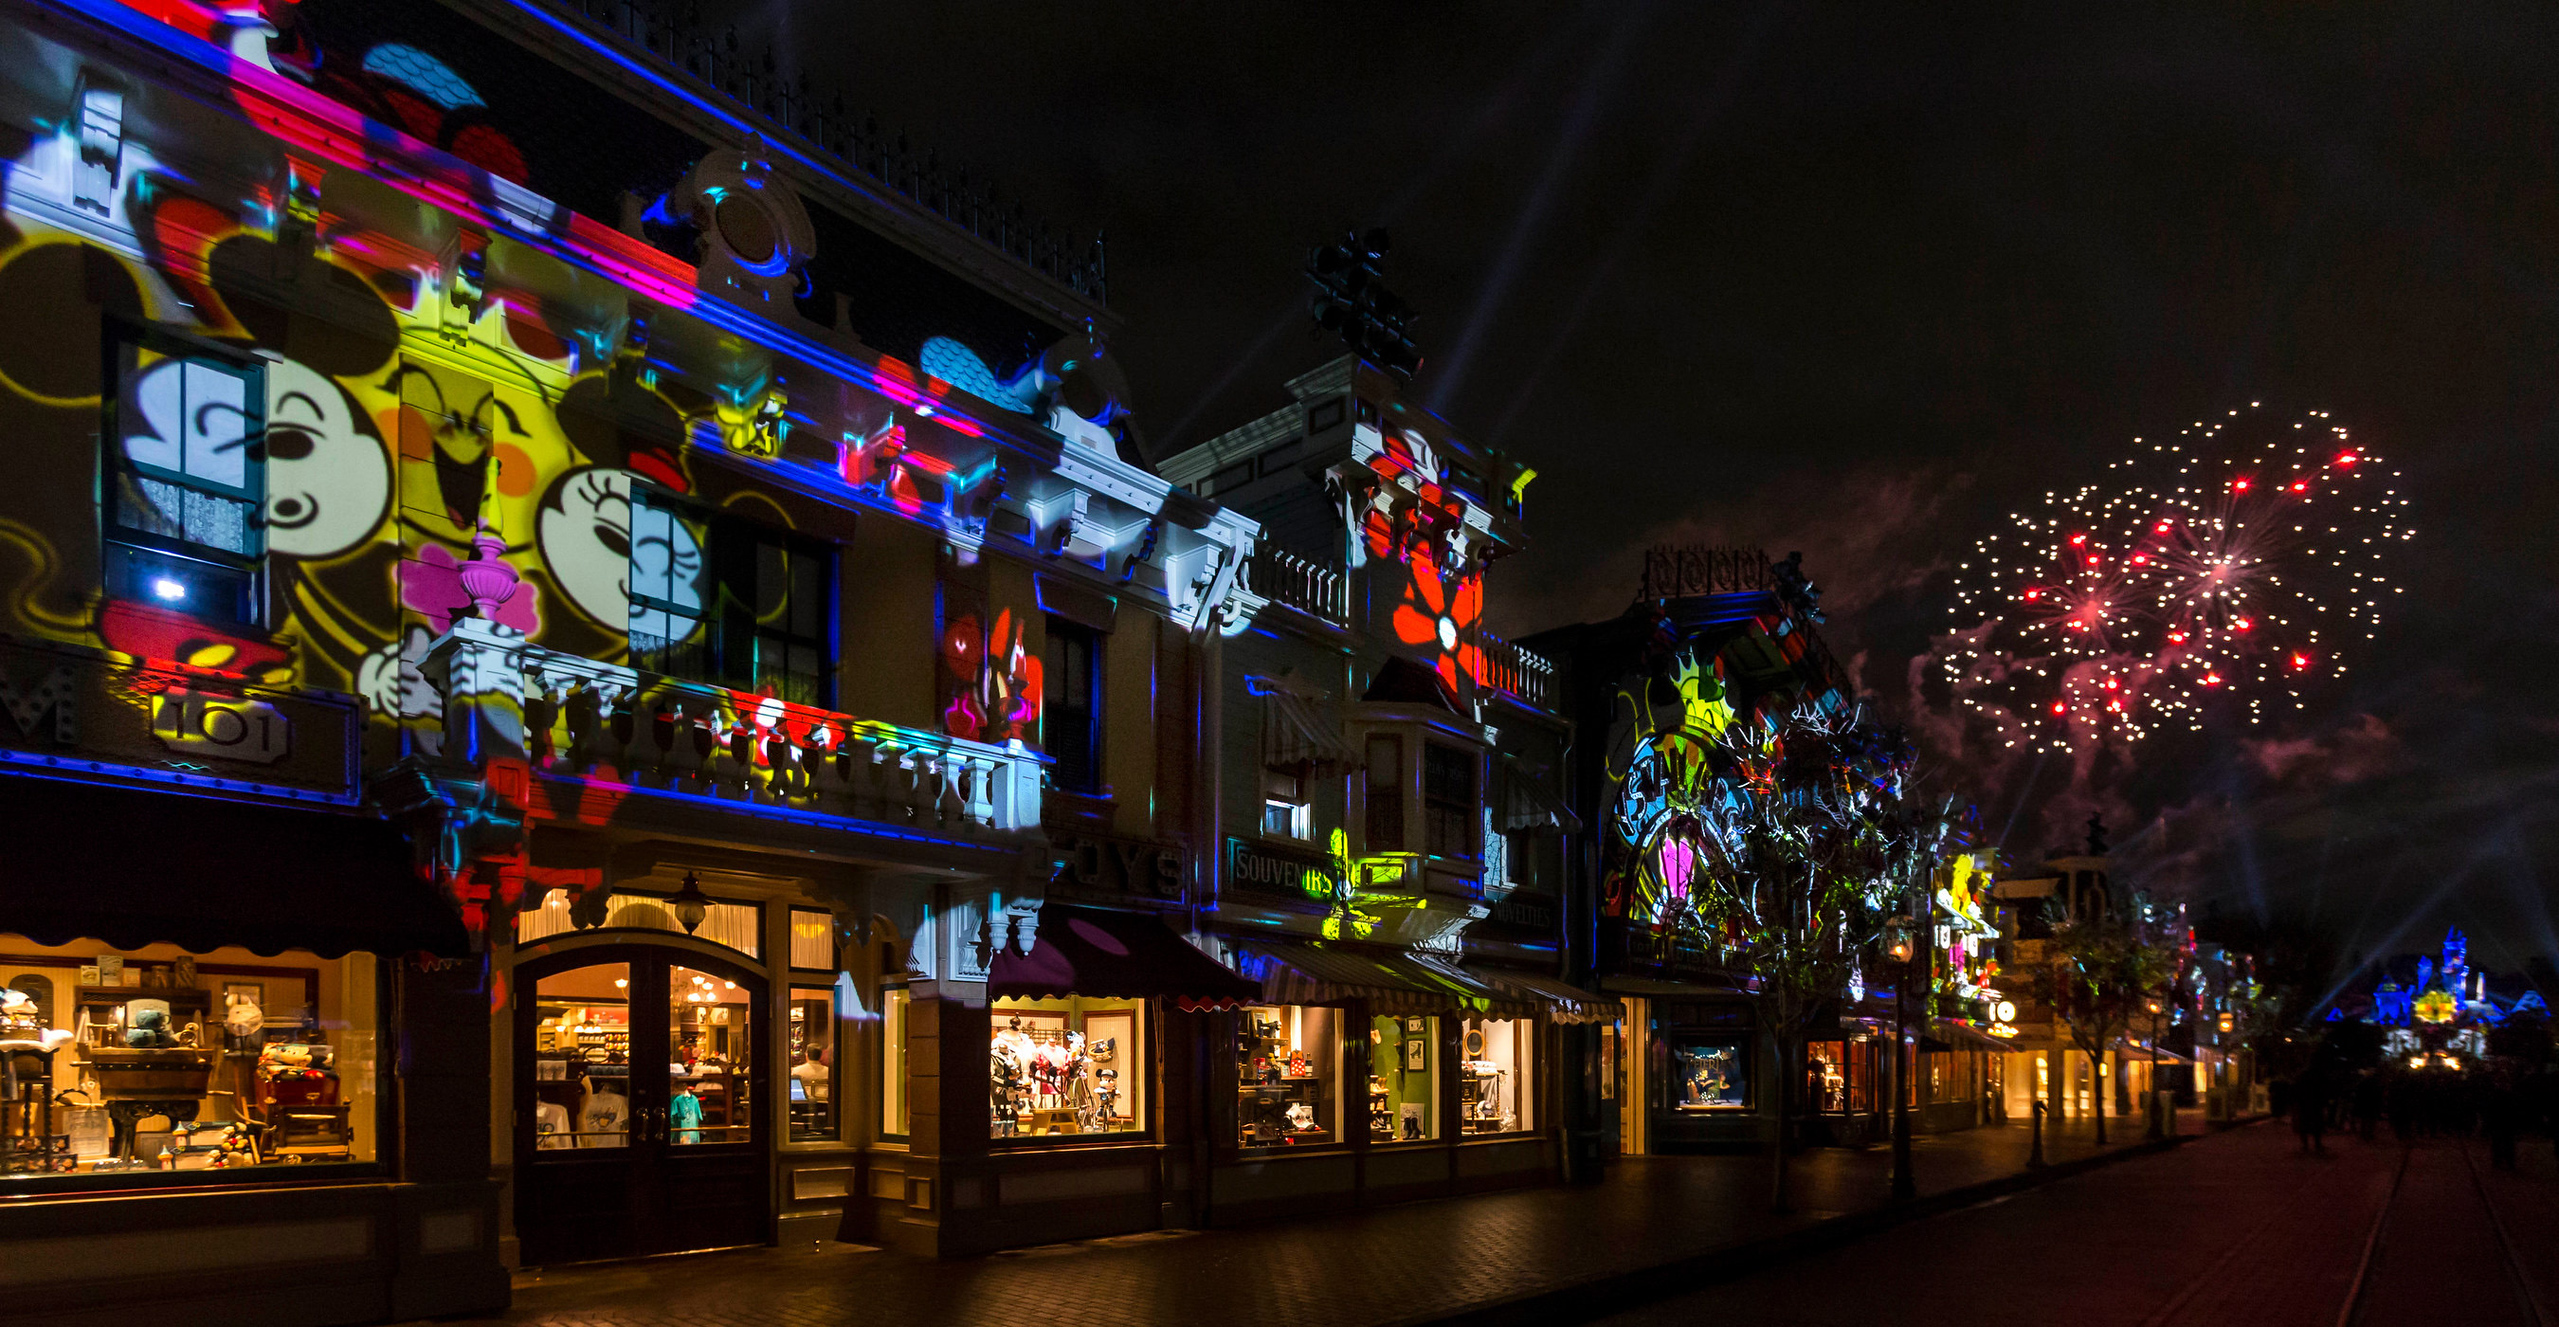 FIRST LOOK: New Mickey's Mix Magic projection (and sometimes fireworks) show